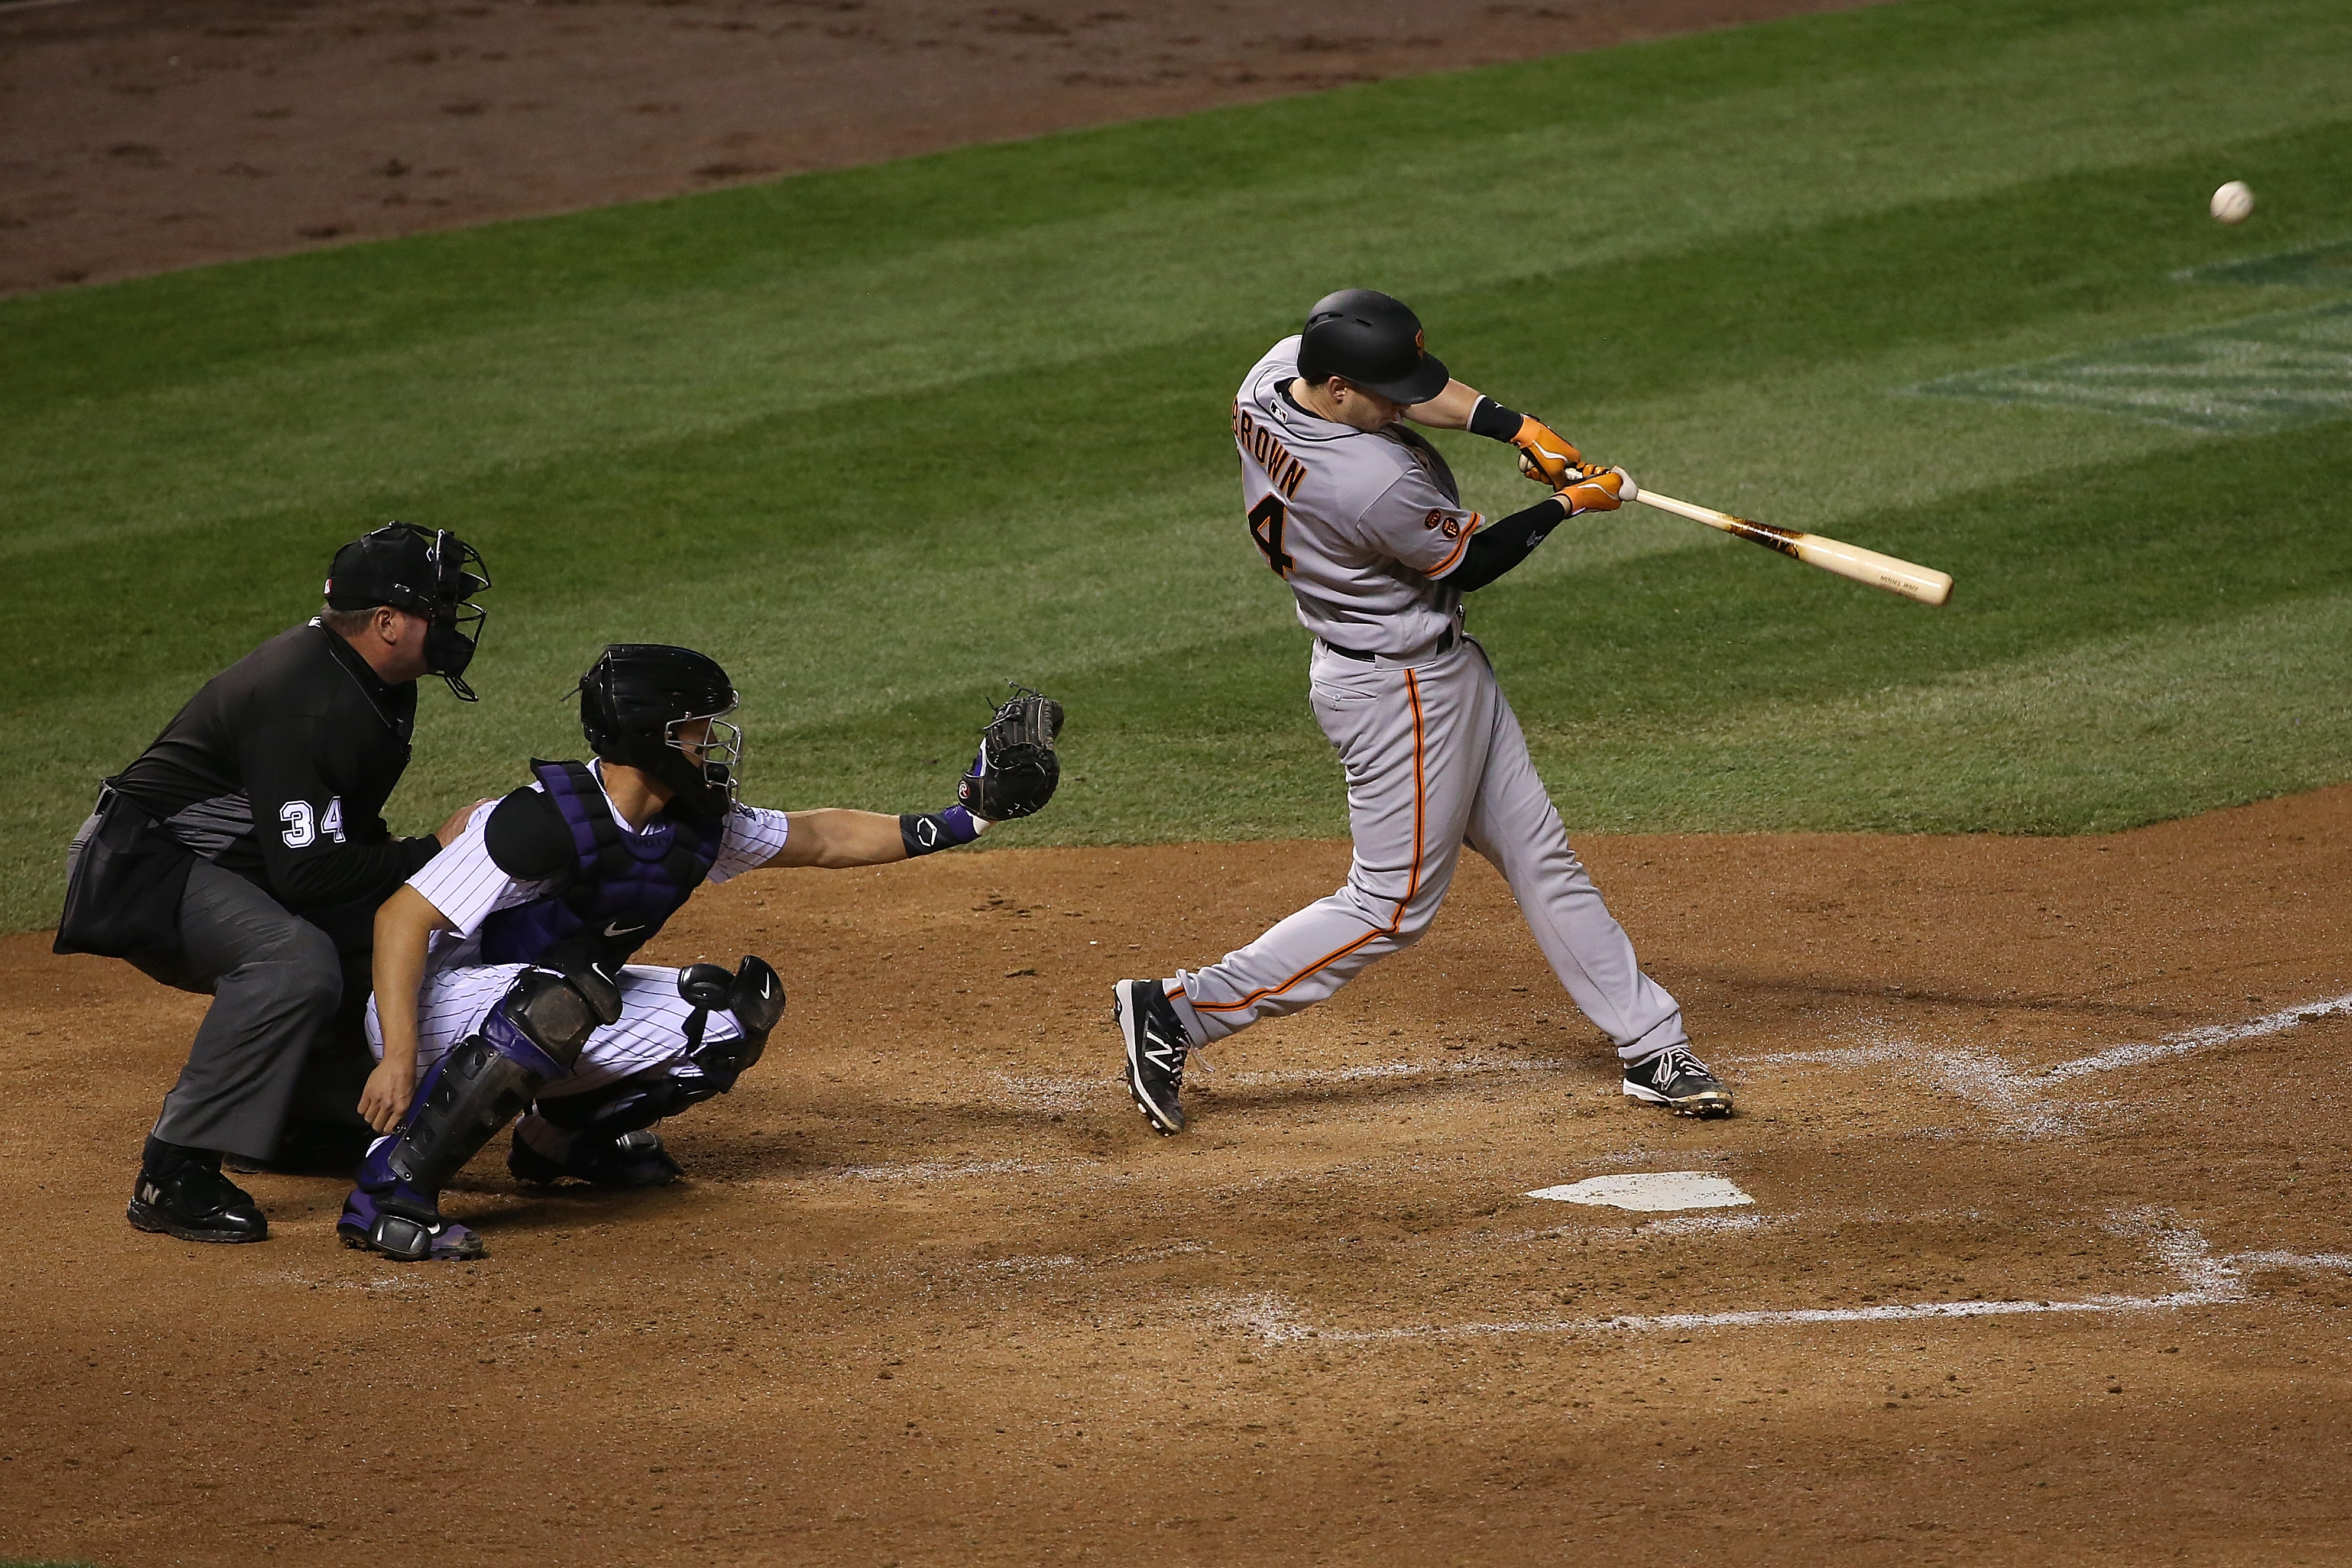 Trevor Brown #14 of the San Francisco Giants hits a two run home run off of Tyler Chatwood #32 of the Colorado Rockies as catcher Nick Hundley #4 of the Colorado Rockies backs up the plate and umpire Sam Holbrook oversees the action as the Gaints take a 5-2 in the sixth inning at Coors Field on April 12, 2016 in Denver, Colorado.